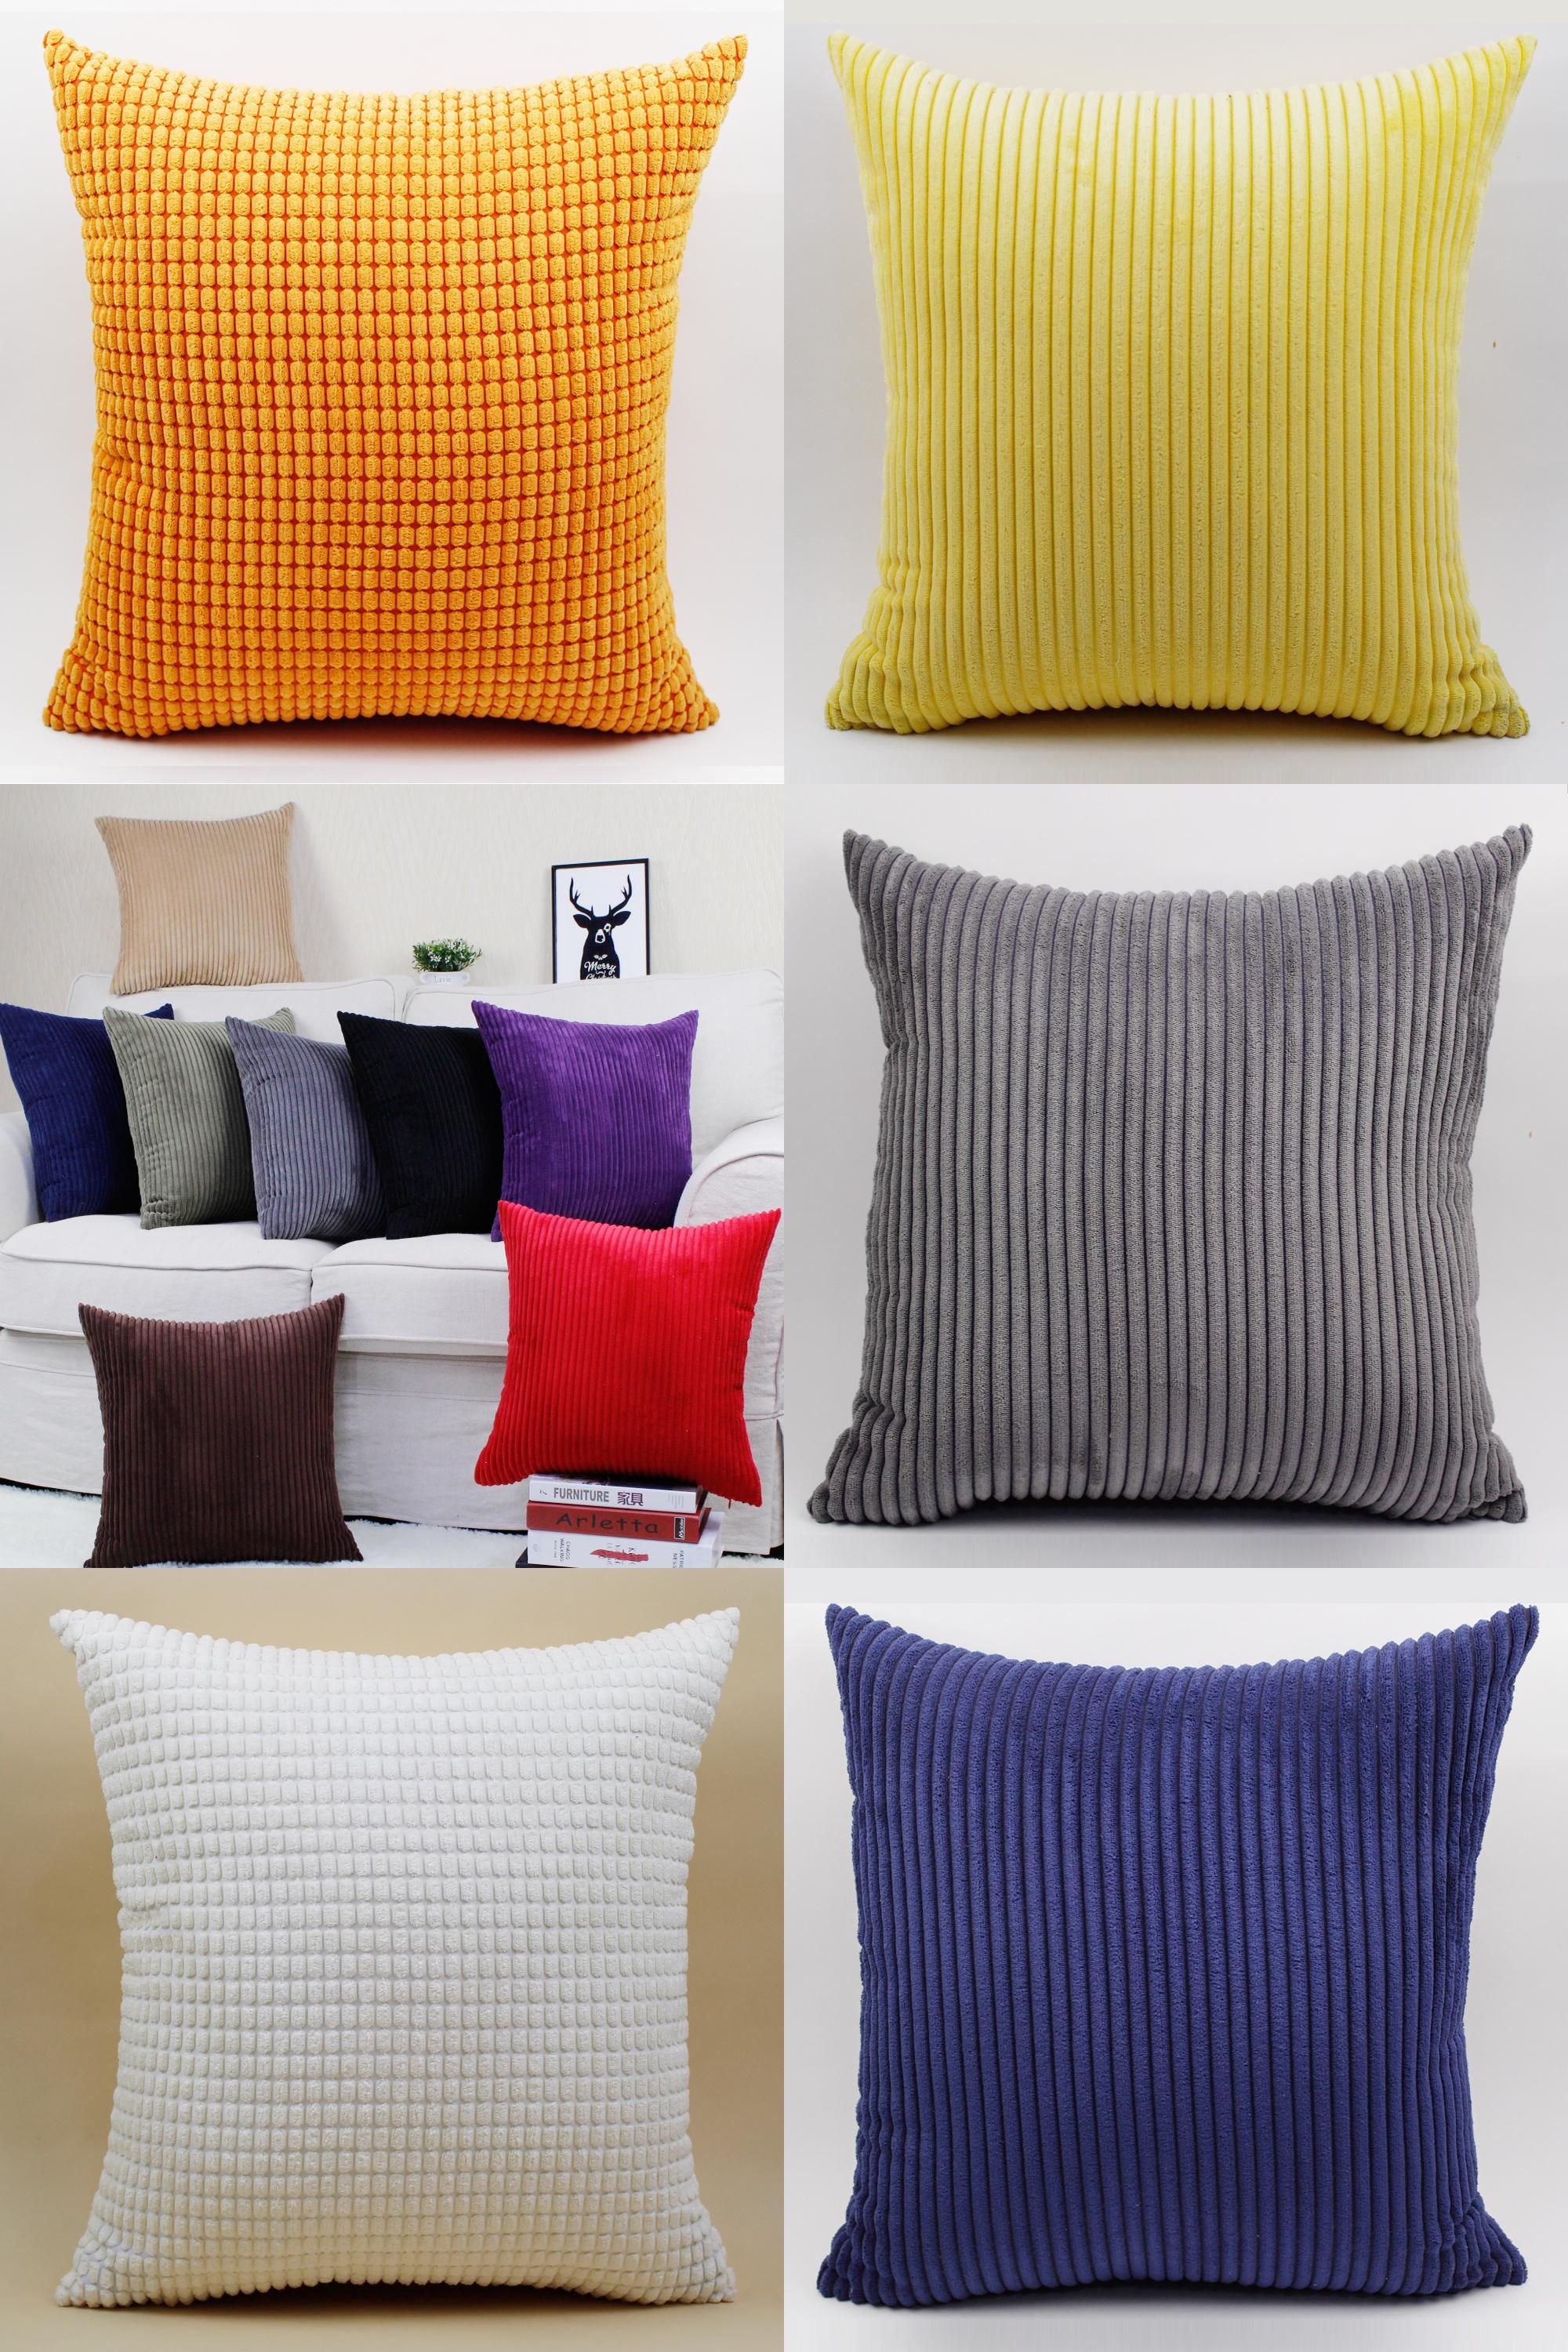 Visit to buy good quality soft chenille big cushion pillow for sofa